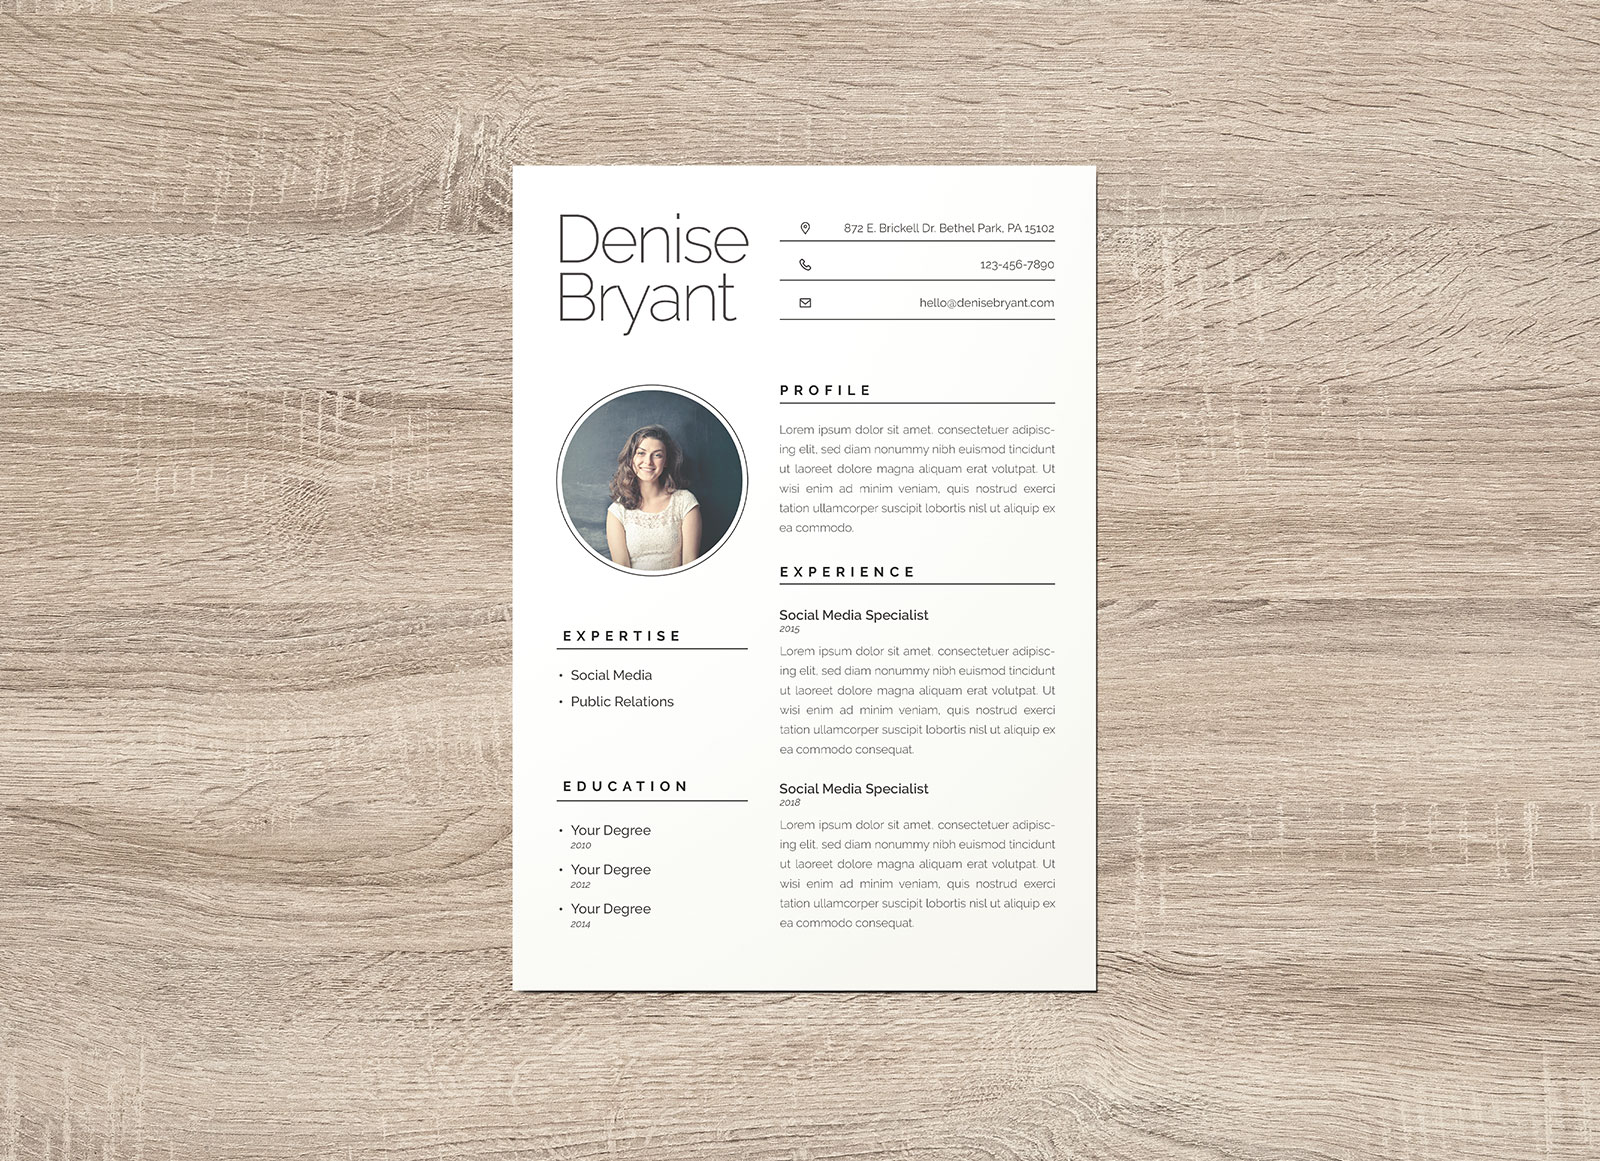 Free-Ai-Resume-CV-Template-for-Social-Media-Special-&-Public-Relation-Officer-1